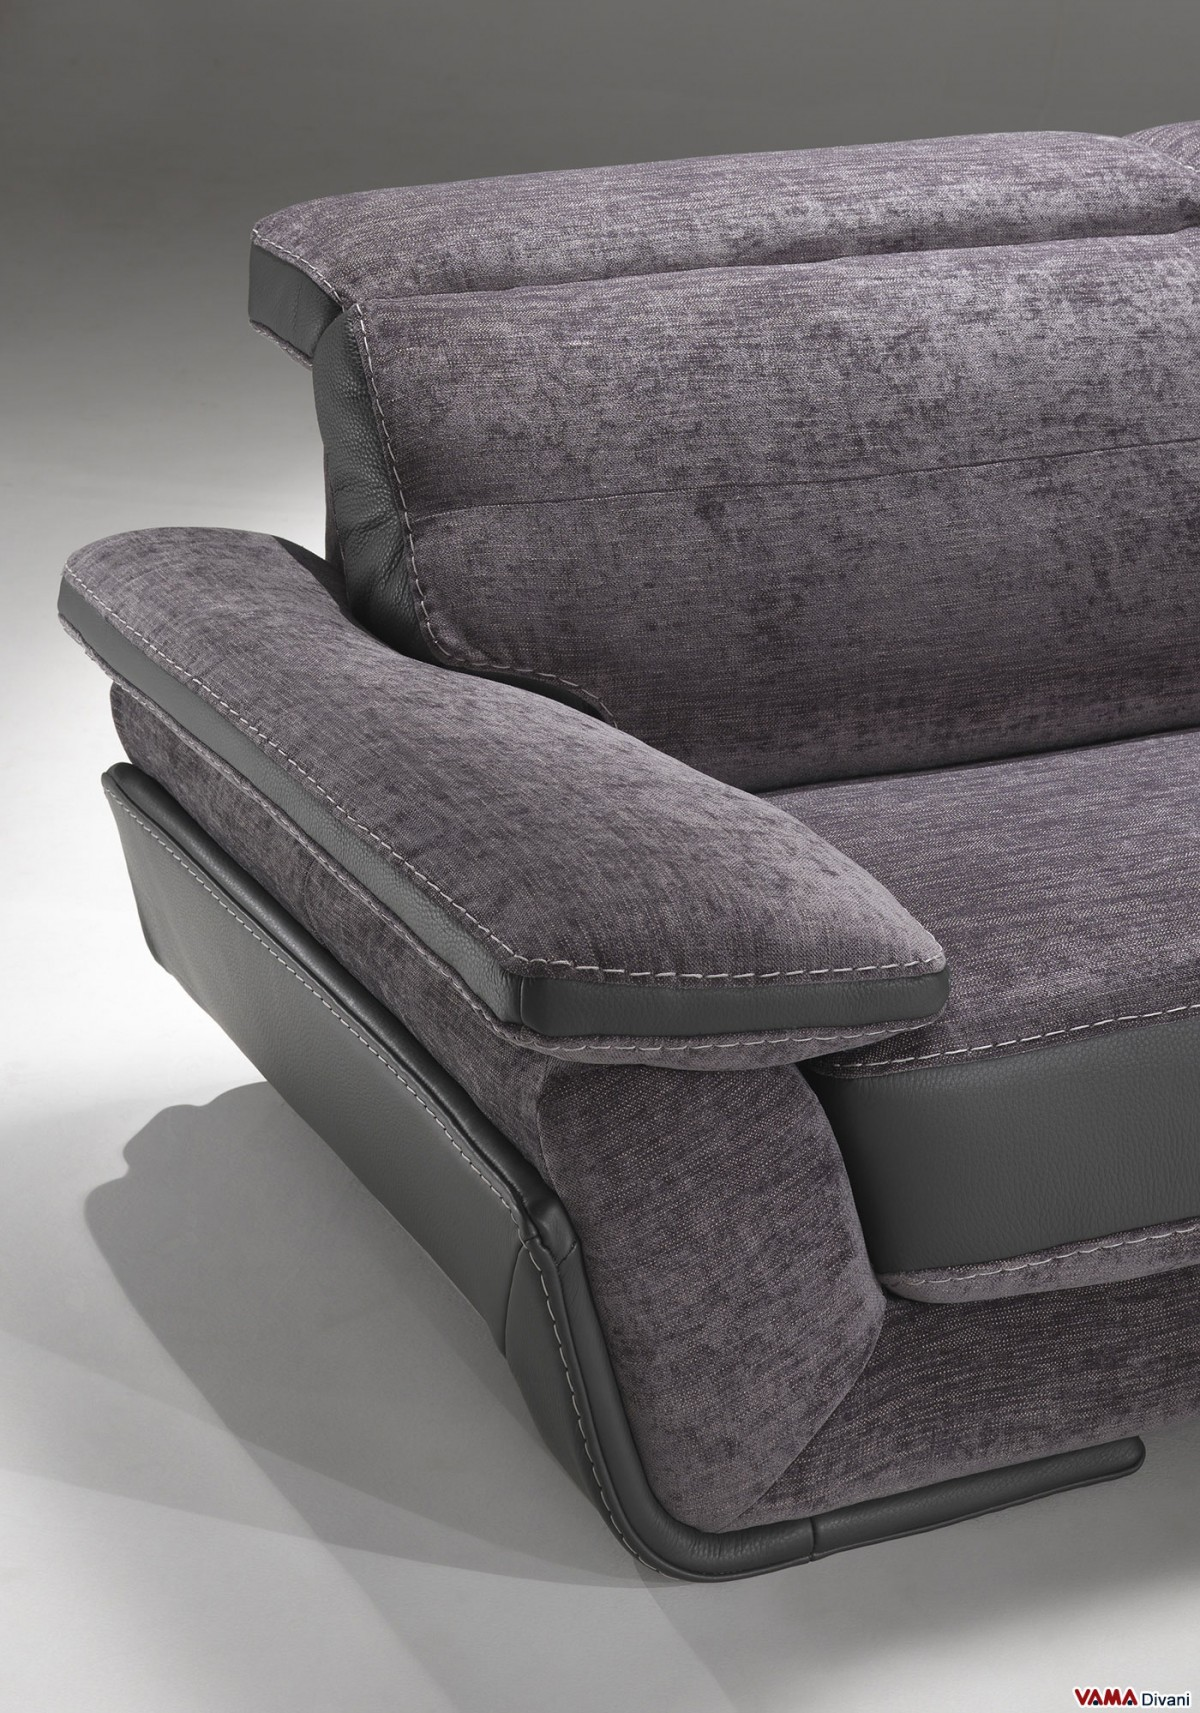 Leather and fabric sofa with reclining headrests